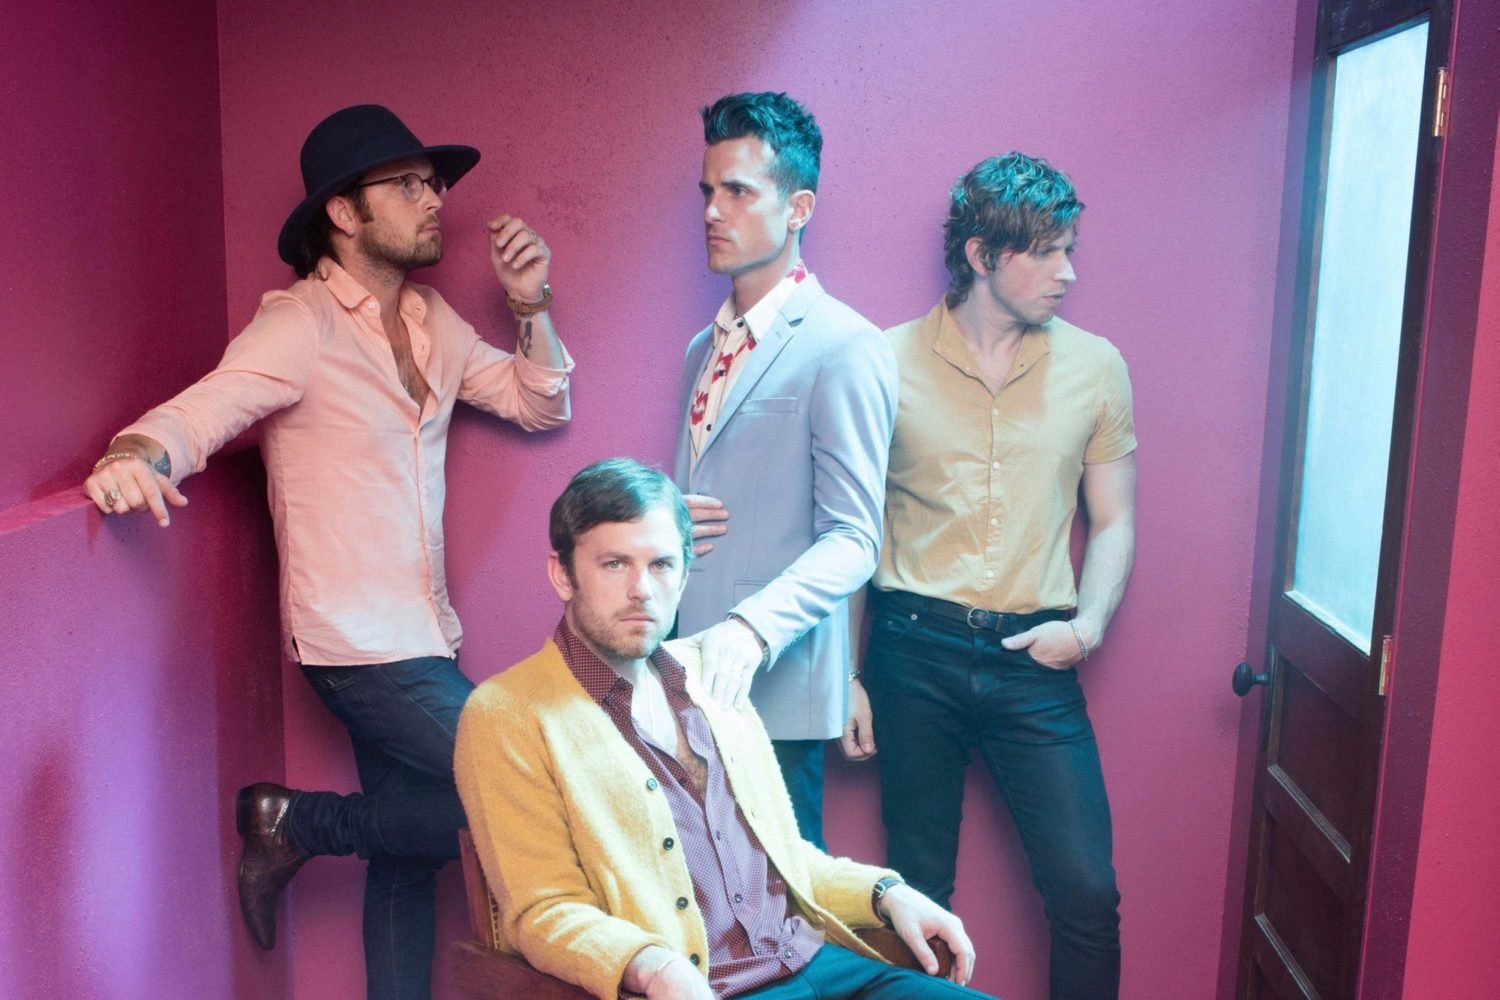 Kings of Leon have an alien encounter in the video for 'Reverend'